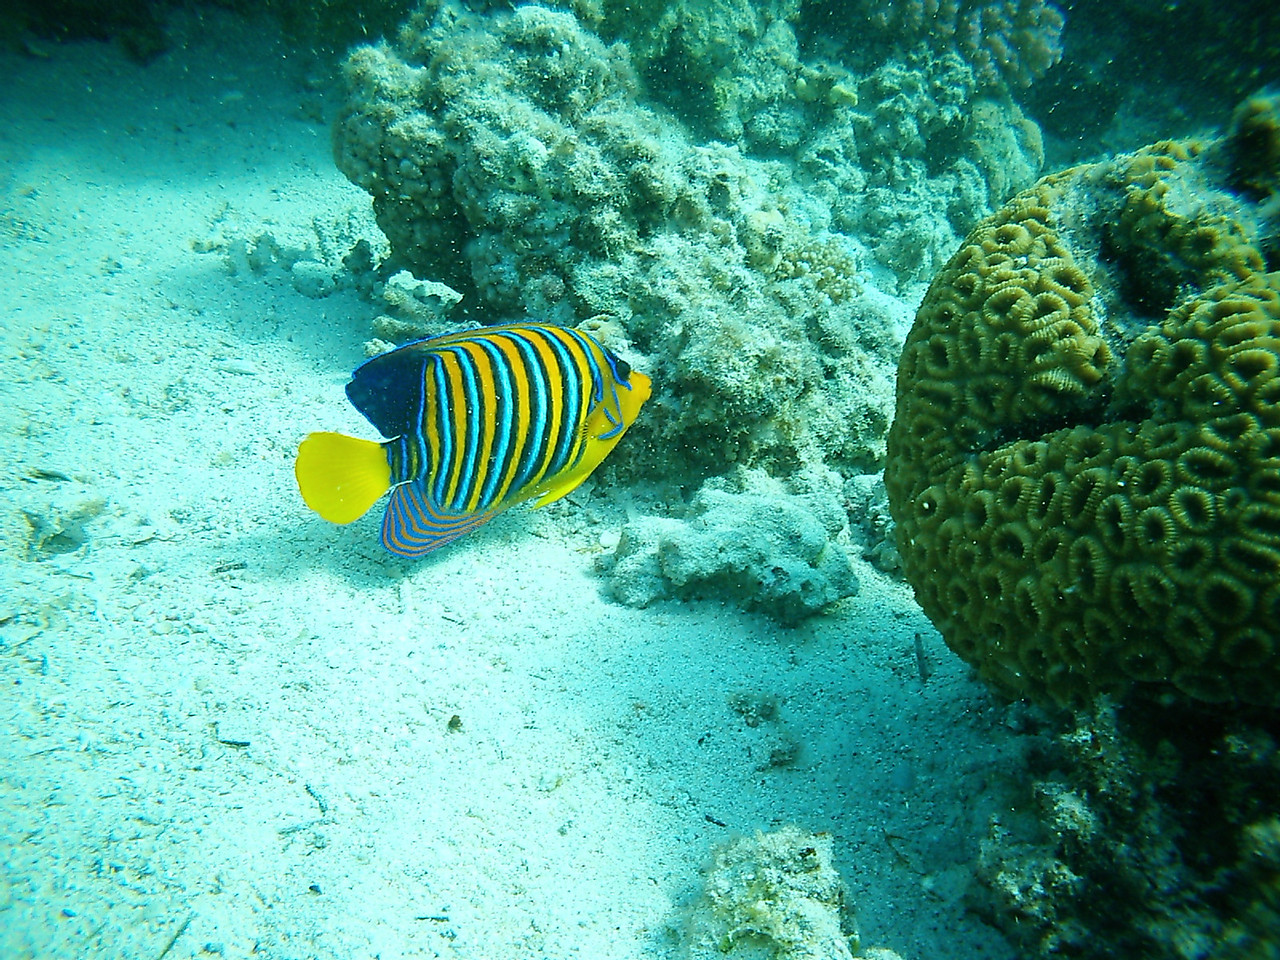 v) I believe this is a Royal angelfish